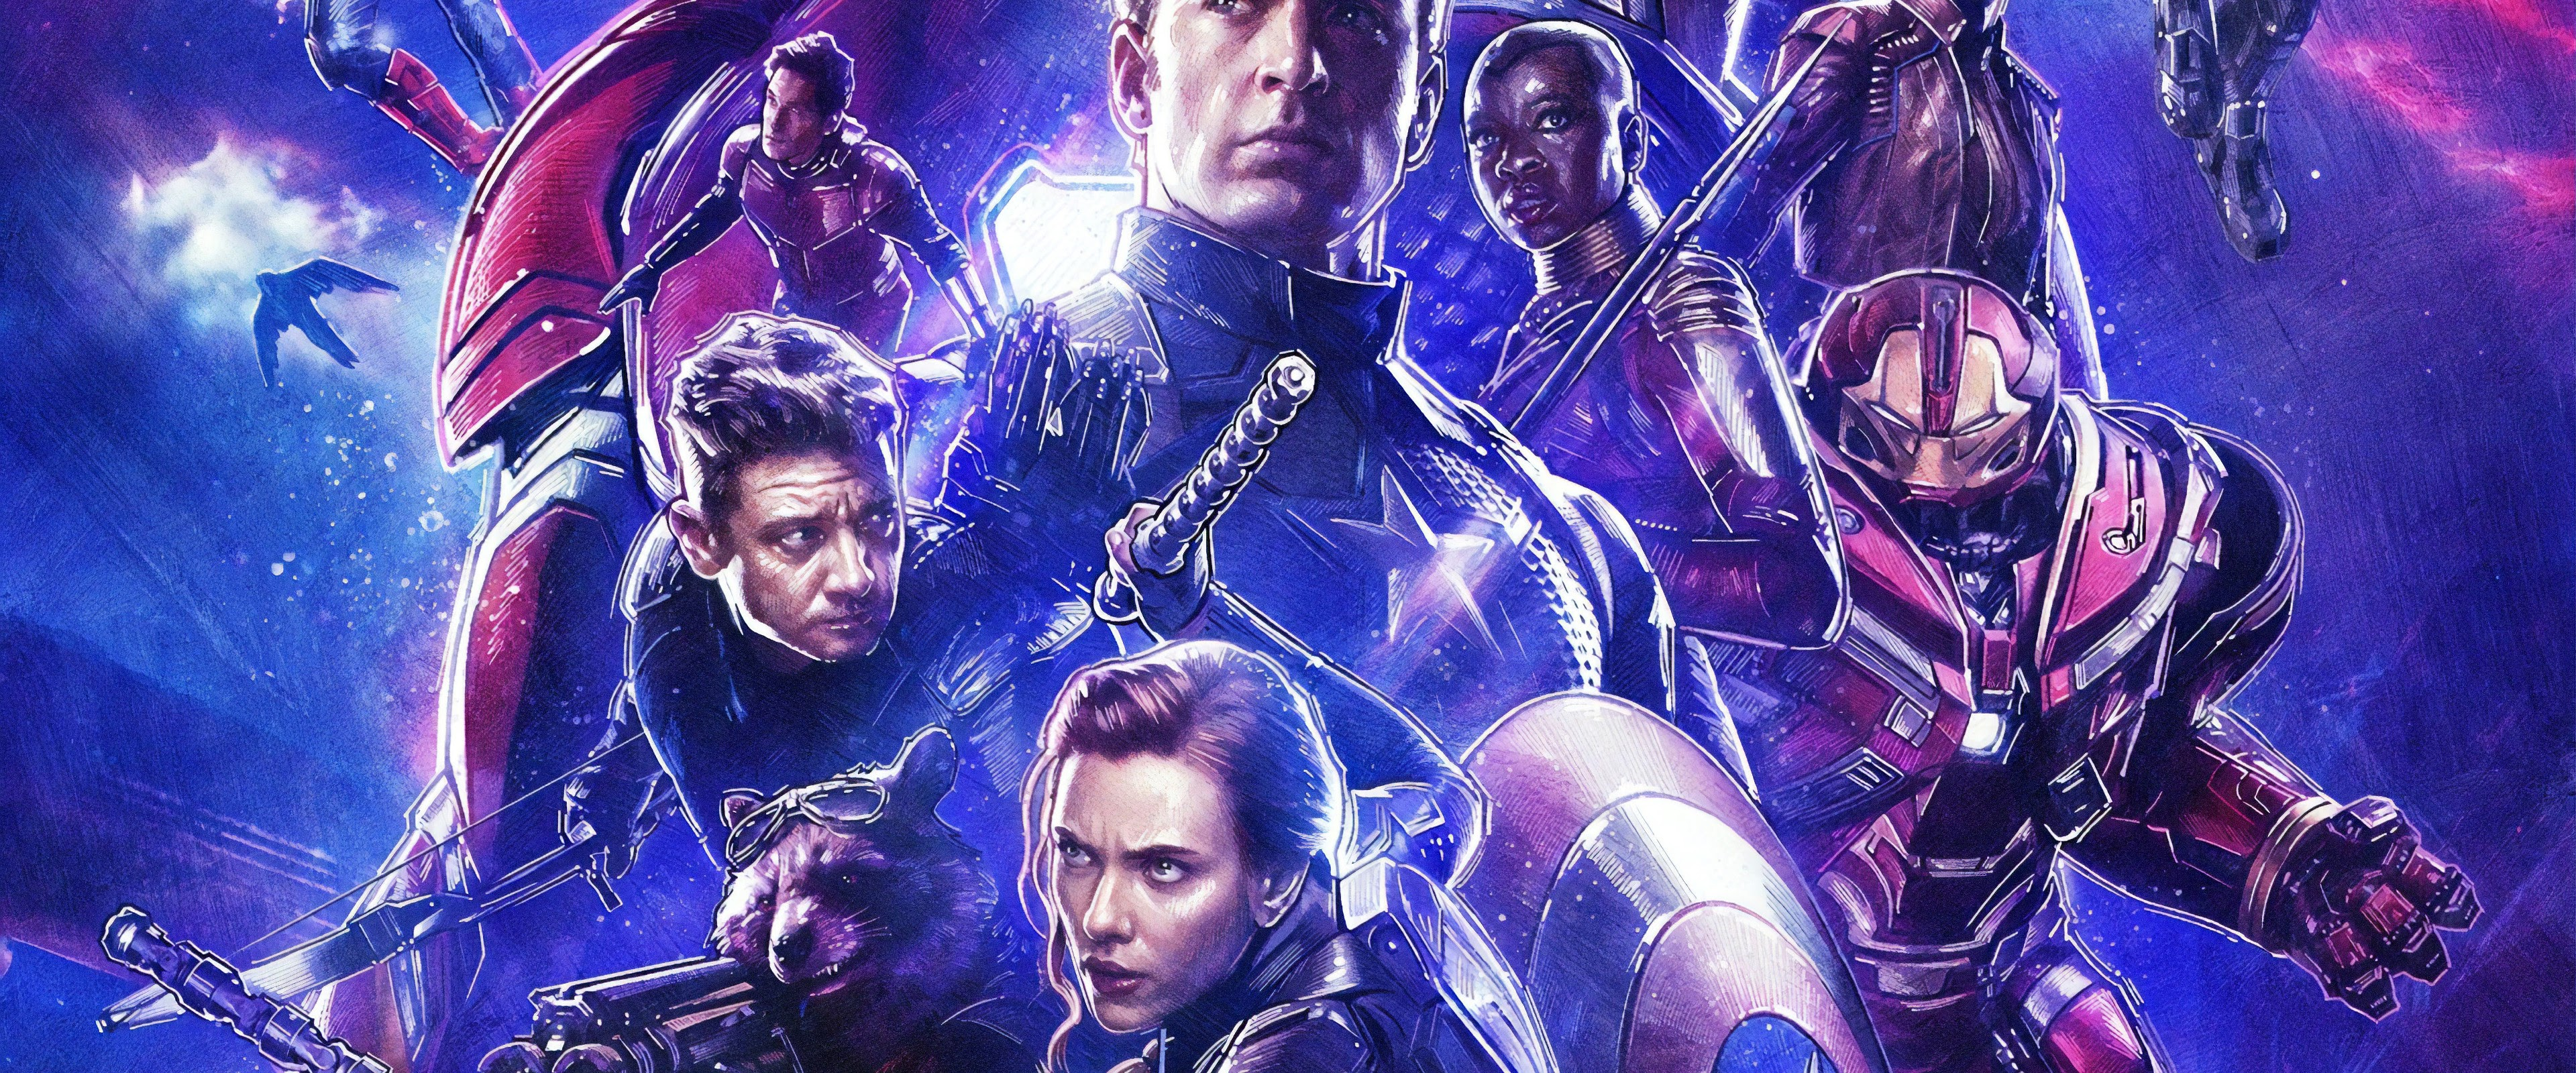 Avengers Endgame Captain America Black Widow Hawkeye 4k Wallpaper 91